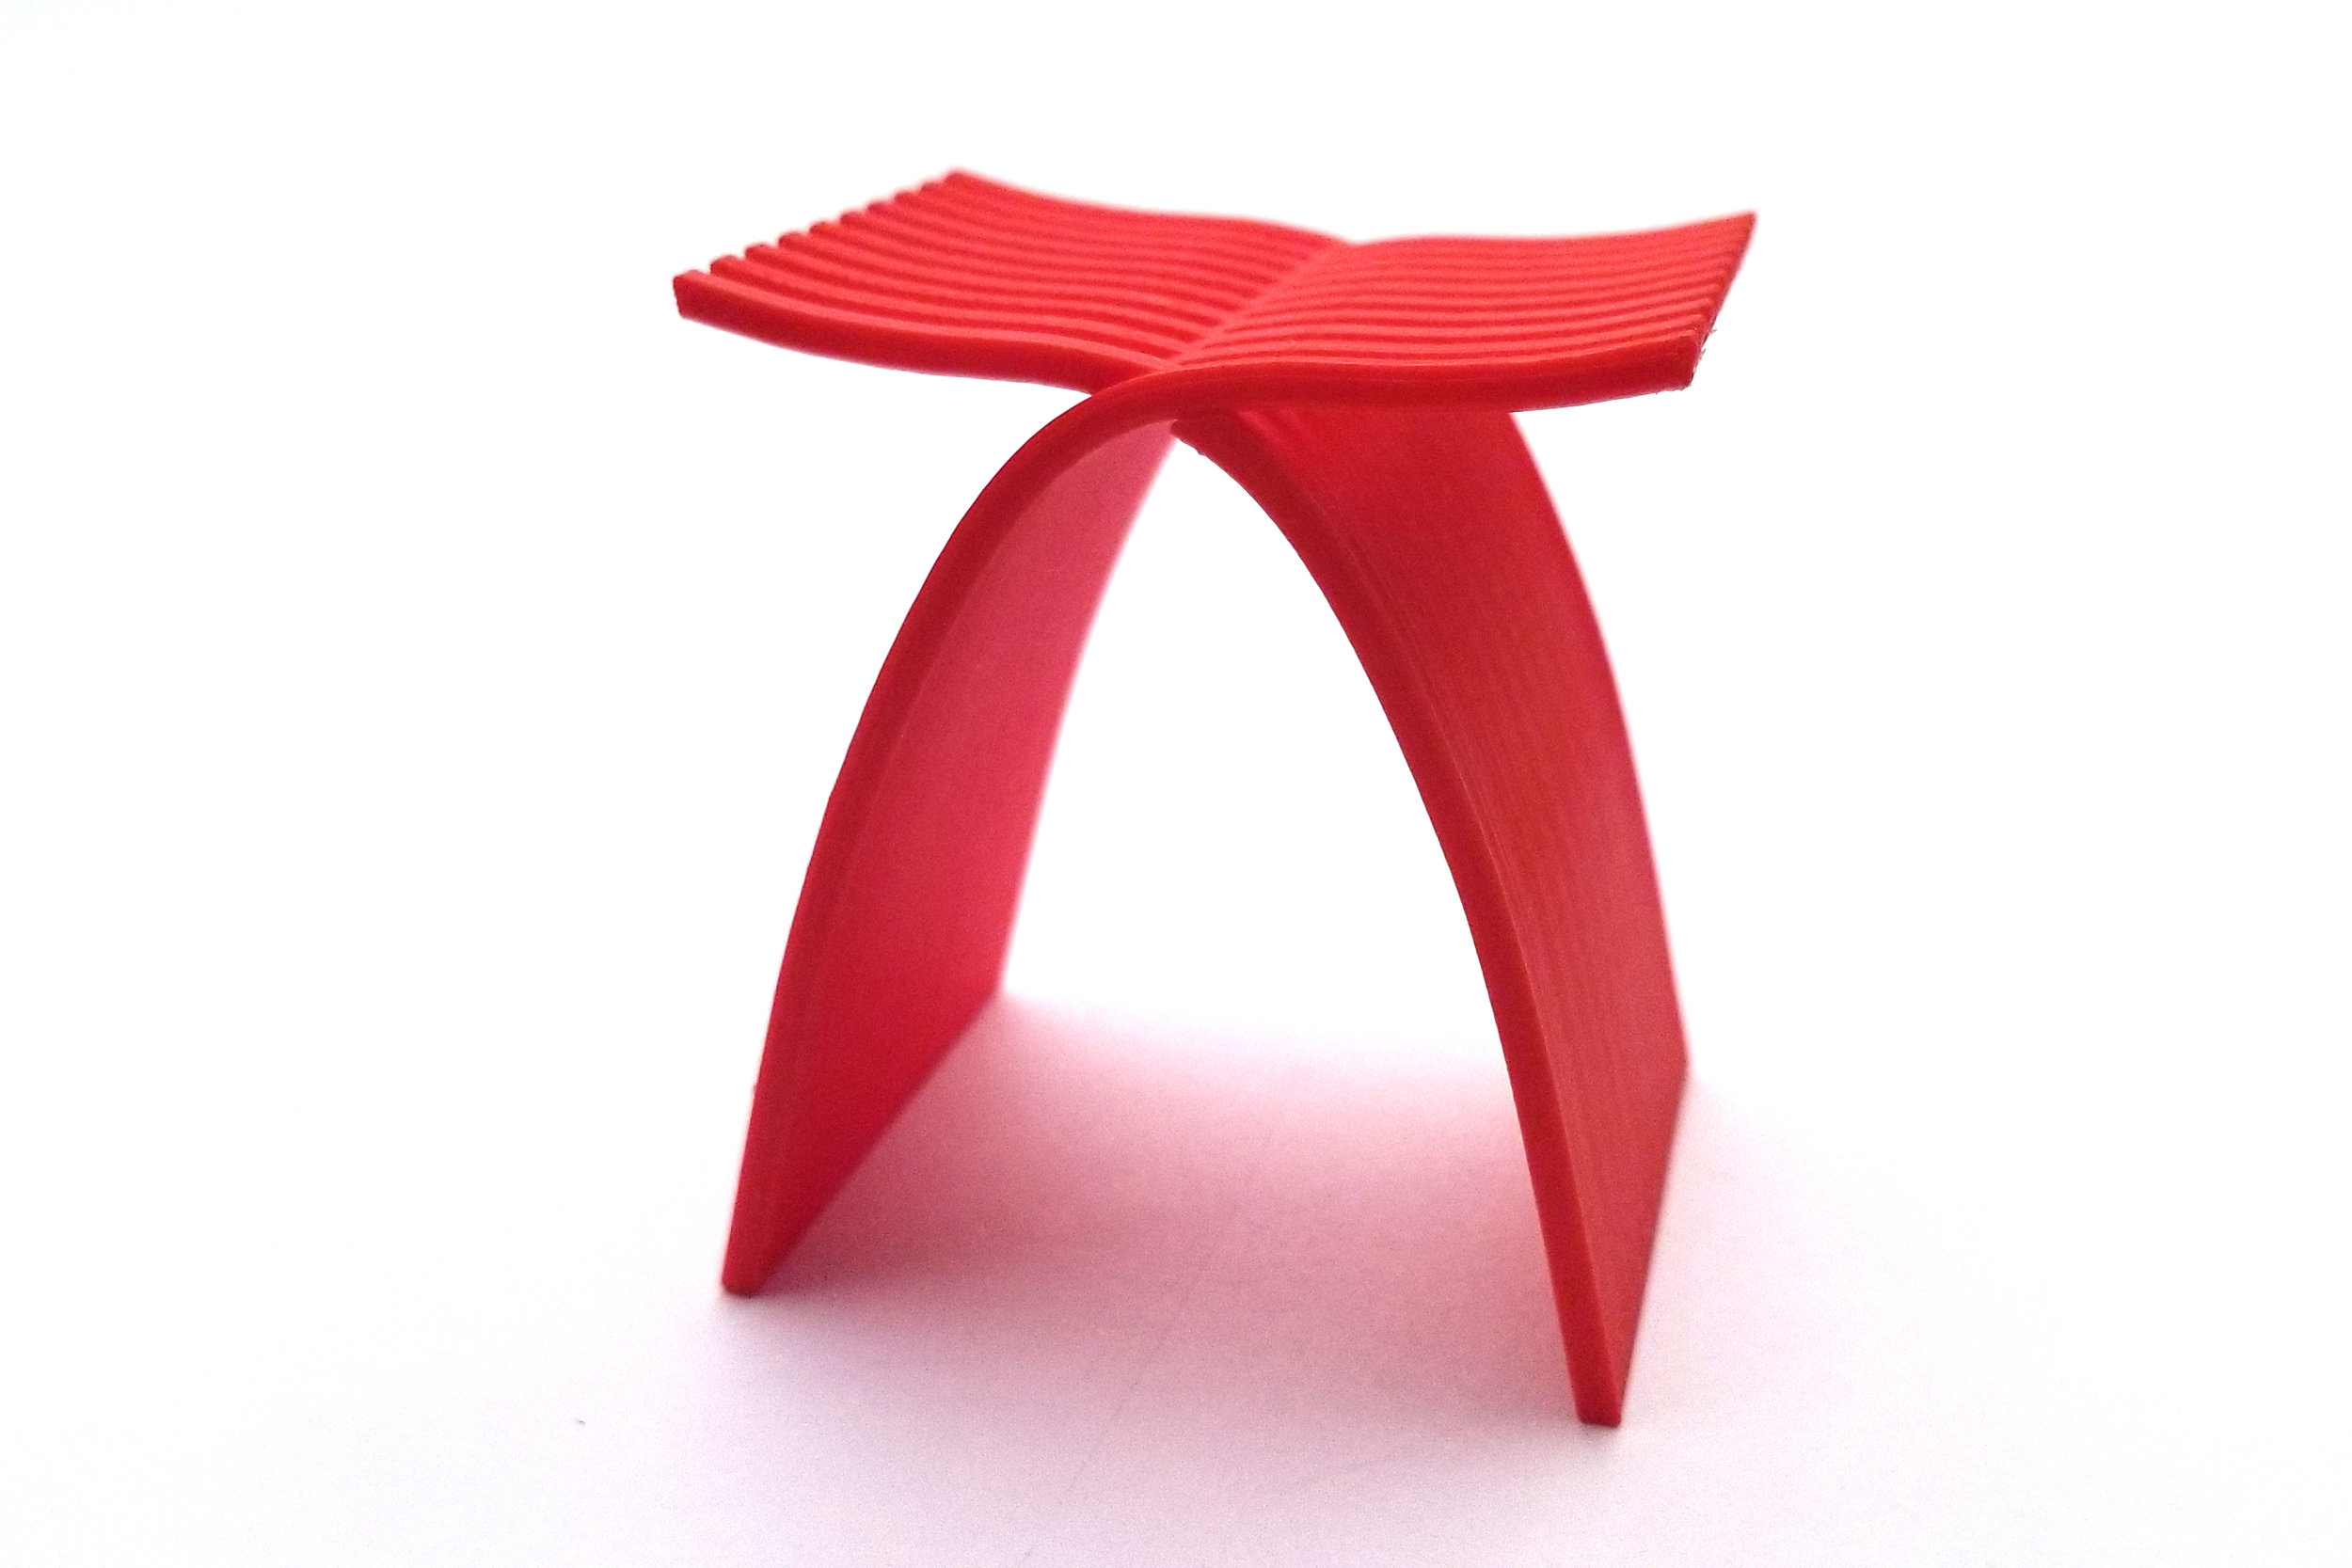 With 3D printing, we could have tested the weight bearing properties of the stool much earlier.